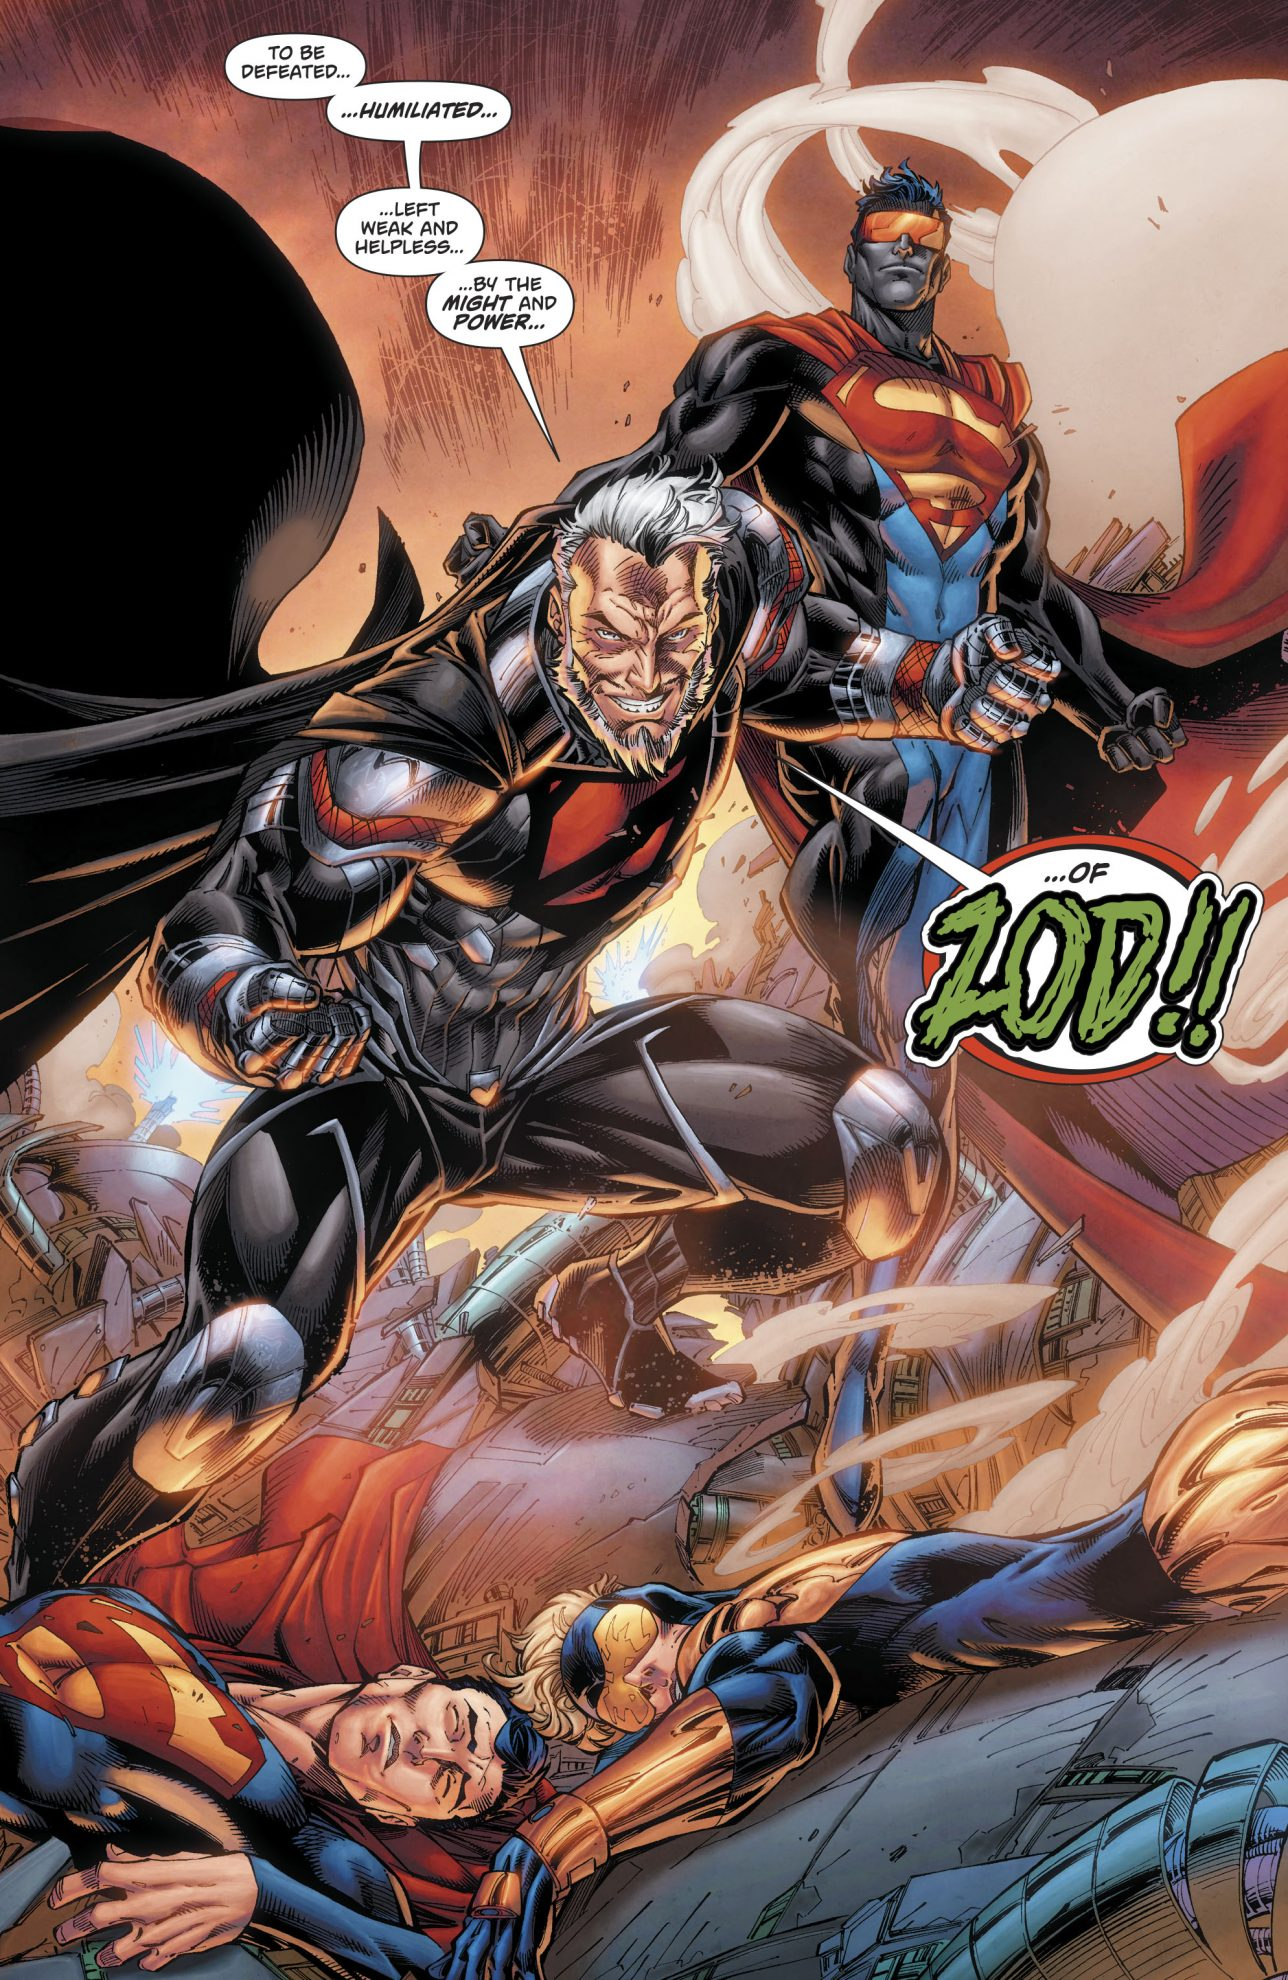 General Zod (Action Comics #997)